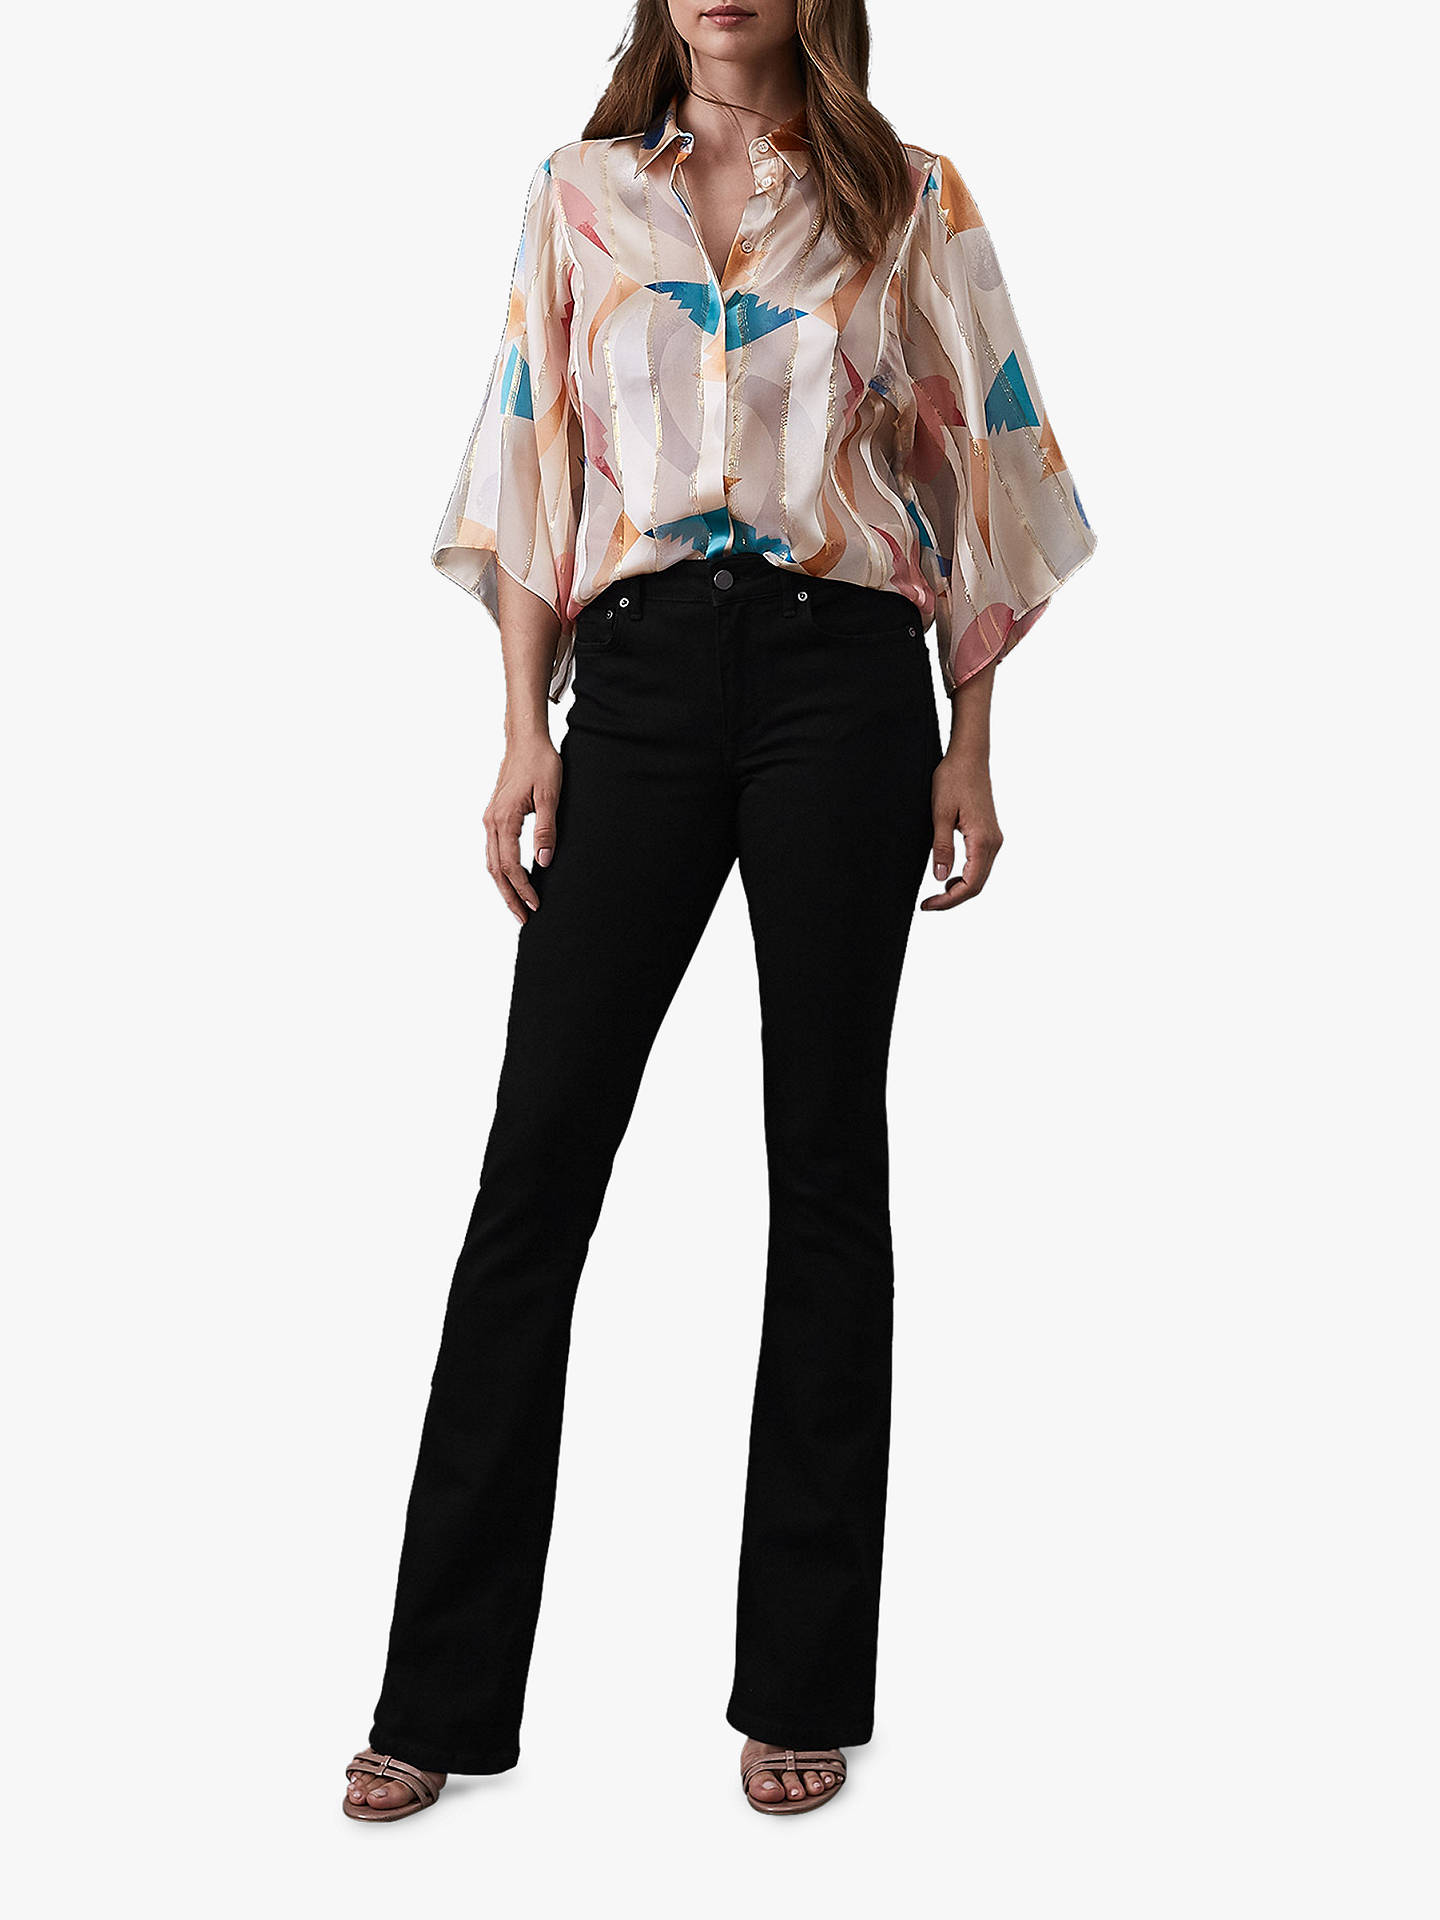 BuyReiss Semina Silk Wide Sleeved Blouse, Neutral, 8 Online at johnlewis.com